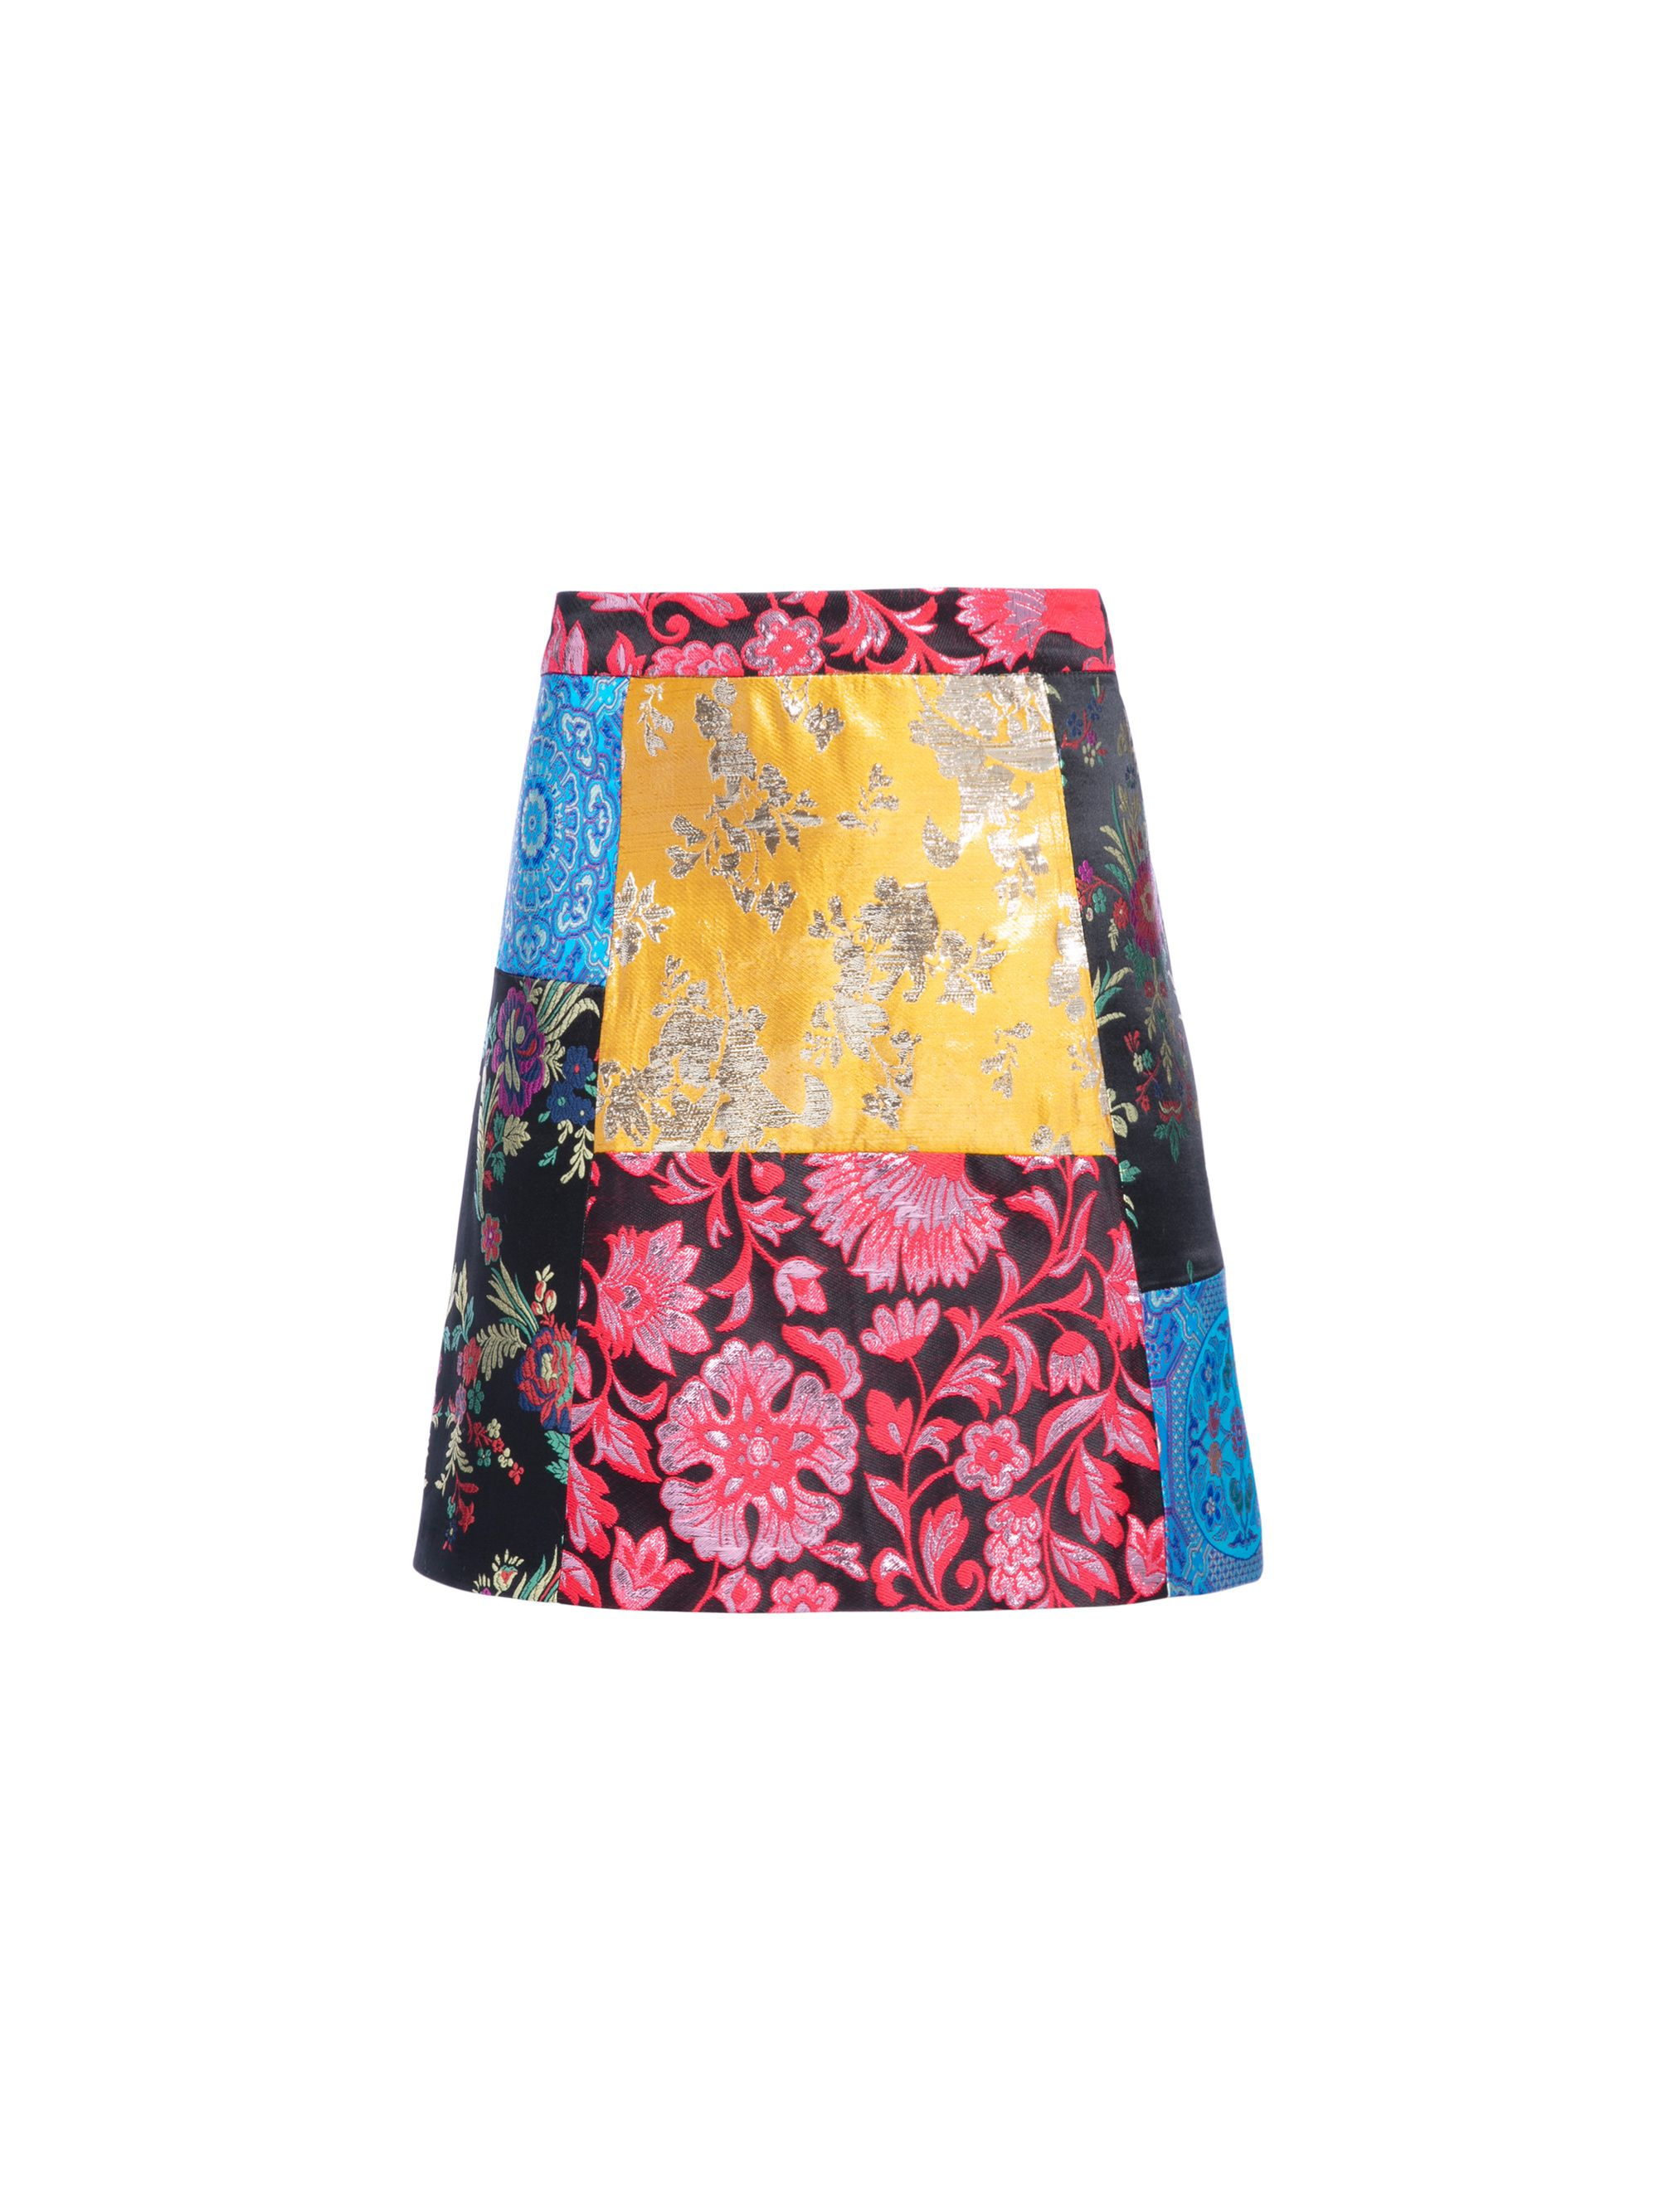 78aa122a85a6 RILEY PATCHWORK MINI SKIRT by Alice + Olivia